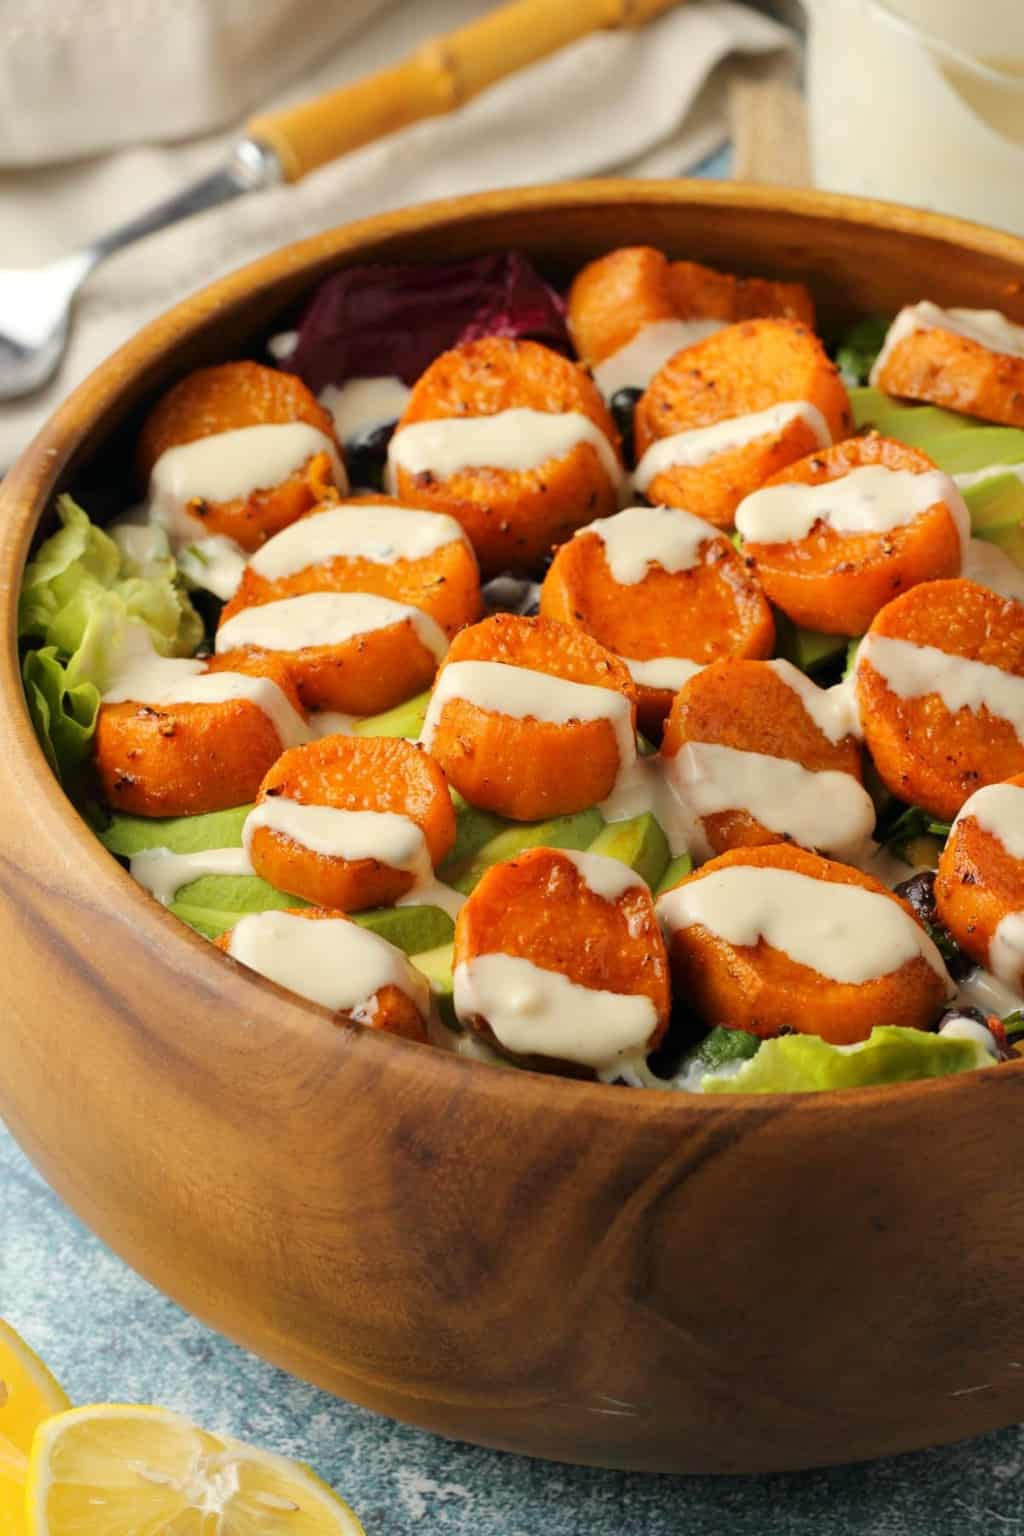 Vegan sweet potato salad topped with tahini dressing in a wooden salad bowl.